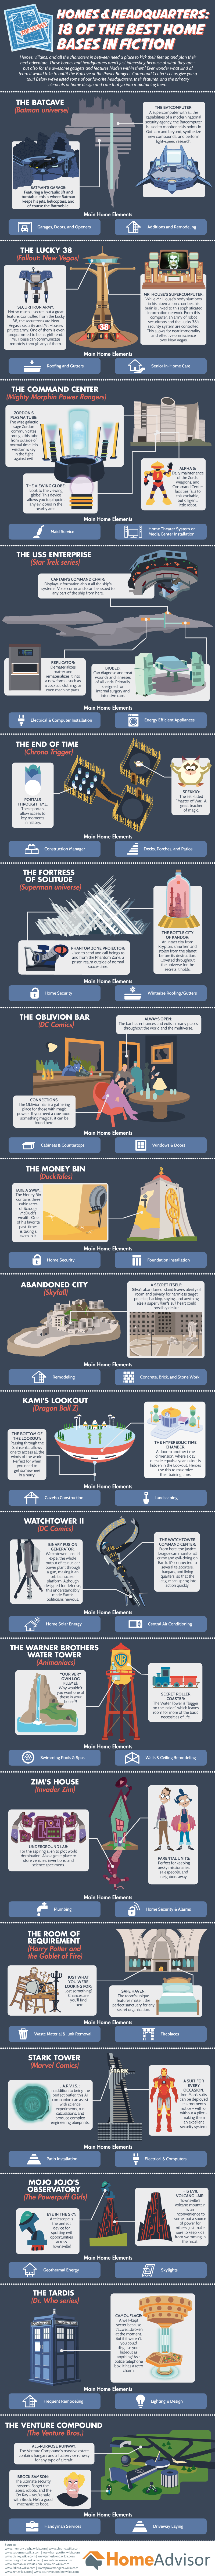 Homes & Headquarters: 18 of the Best Home Bases in Fiction #Infographic